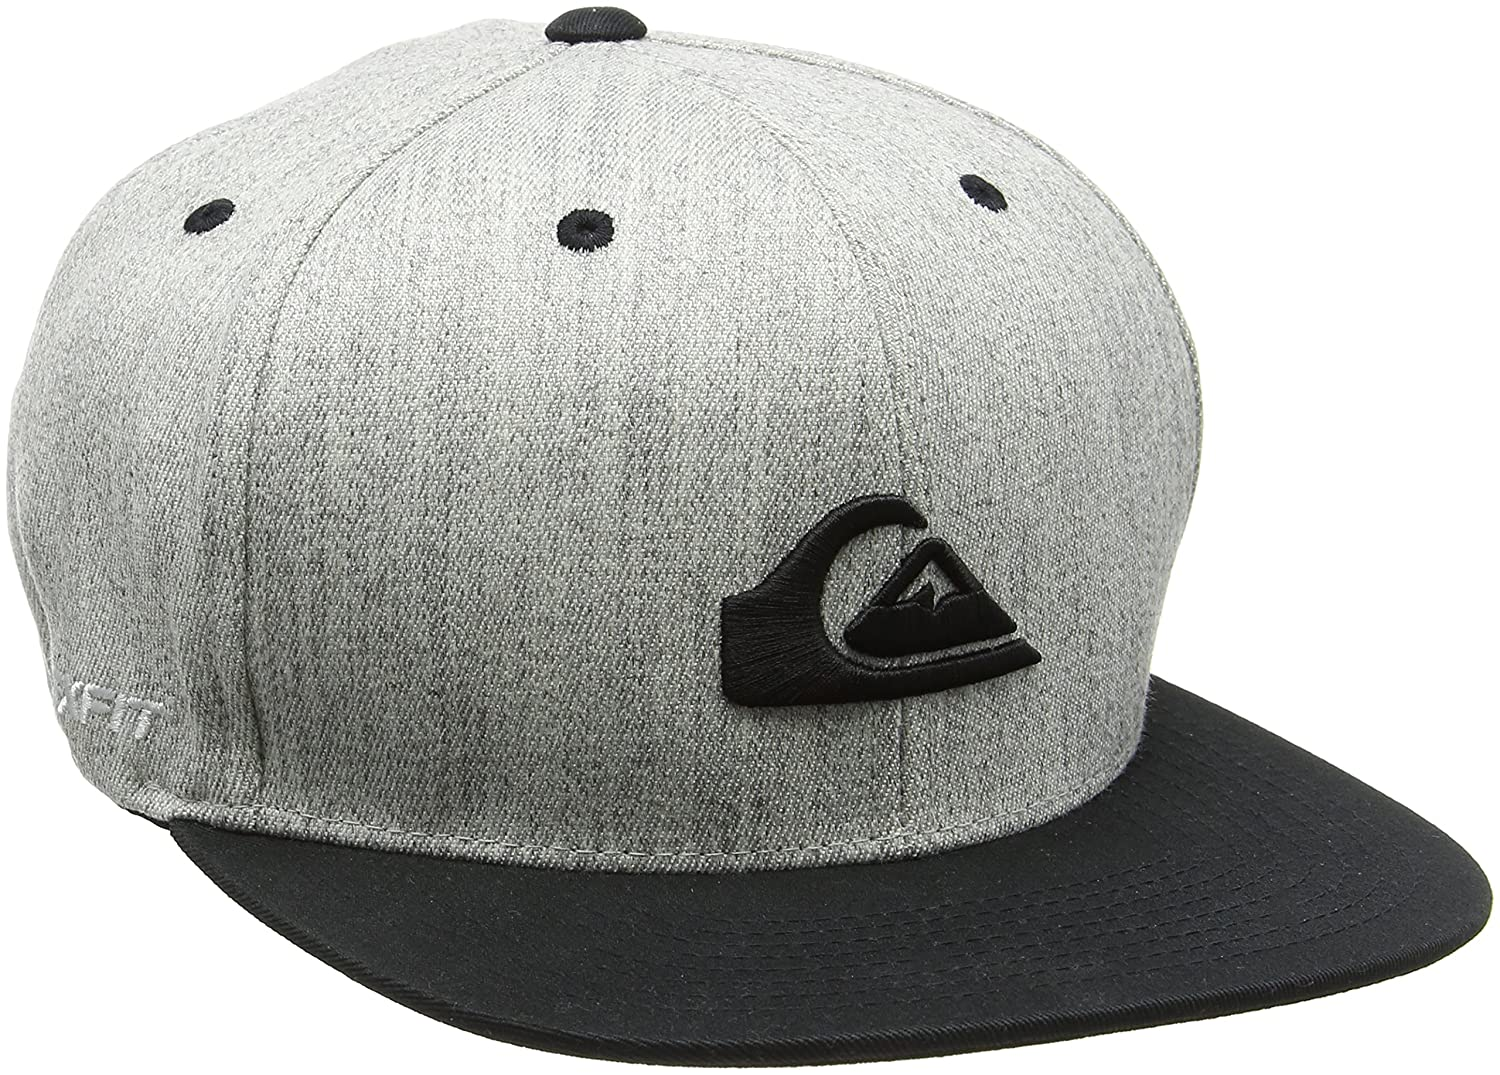 Quiksilver Stuckles M Hats Smc0 Gorra, Grey (Steeple Gray), Medium ...